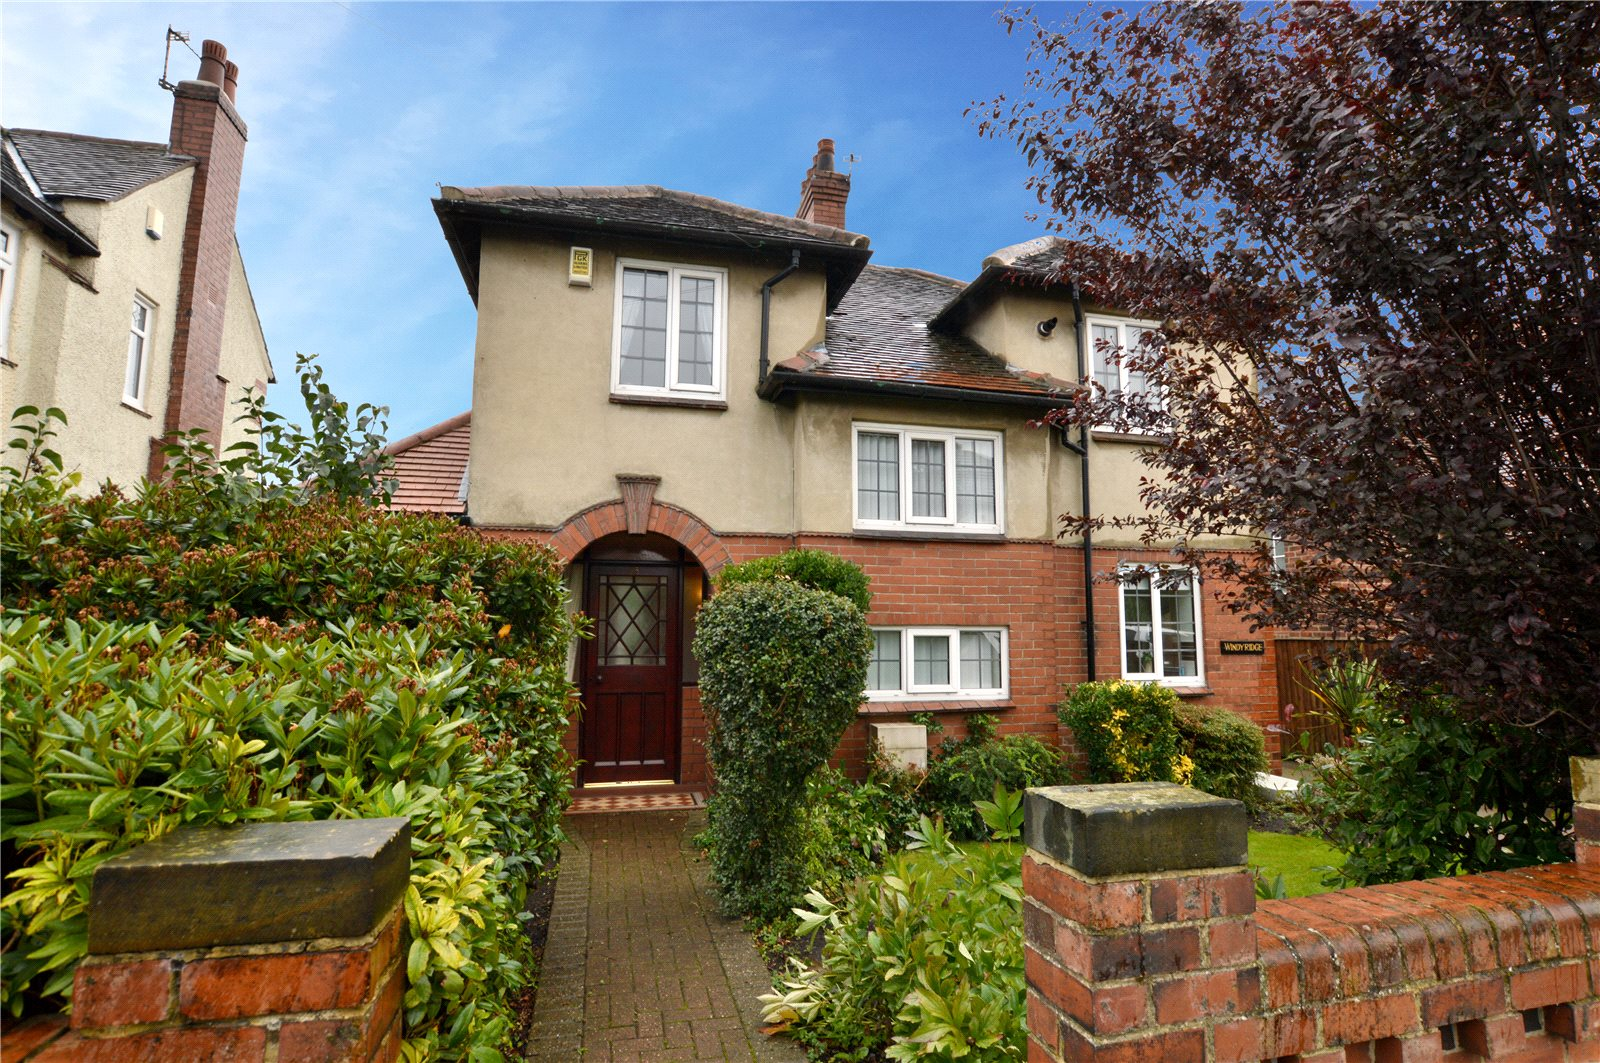 property for sale in Pudsey, exterior of property half red brick half cladding